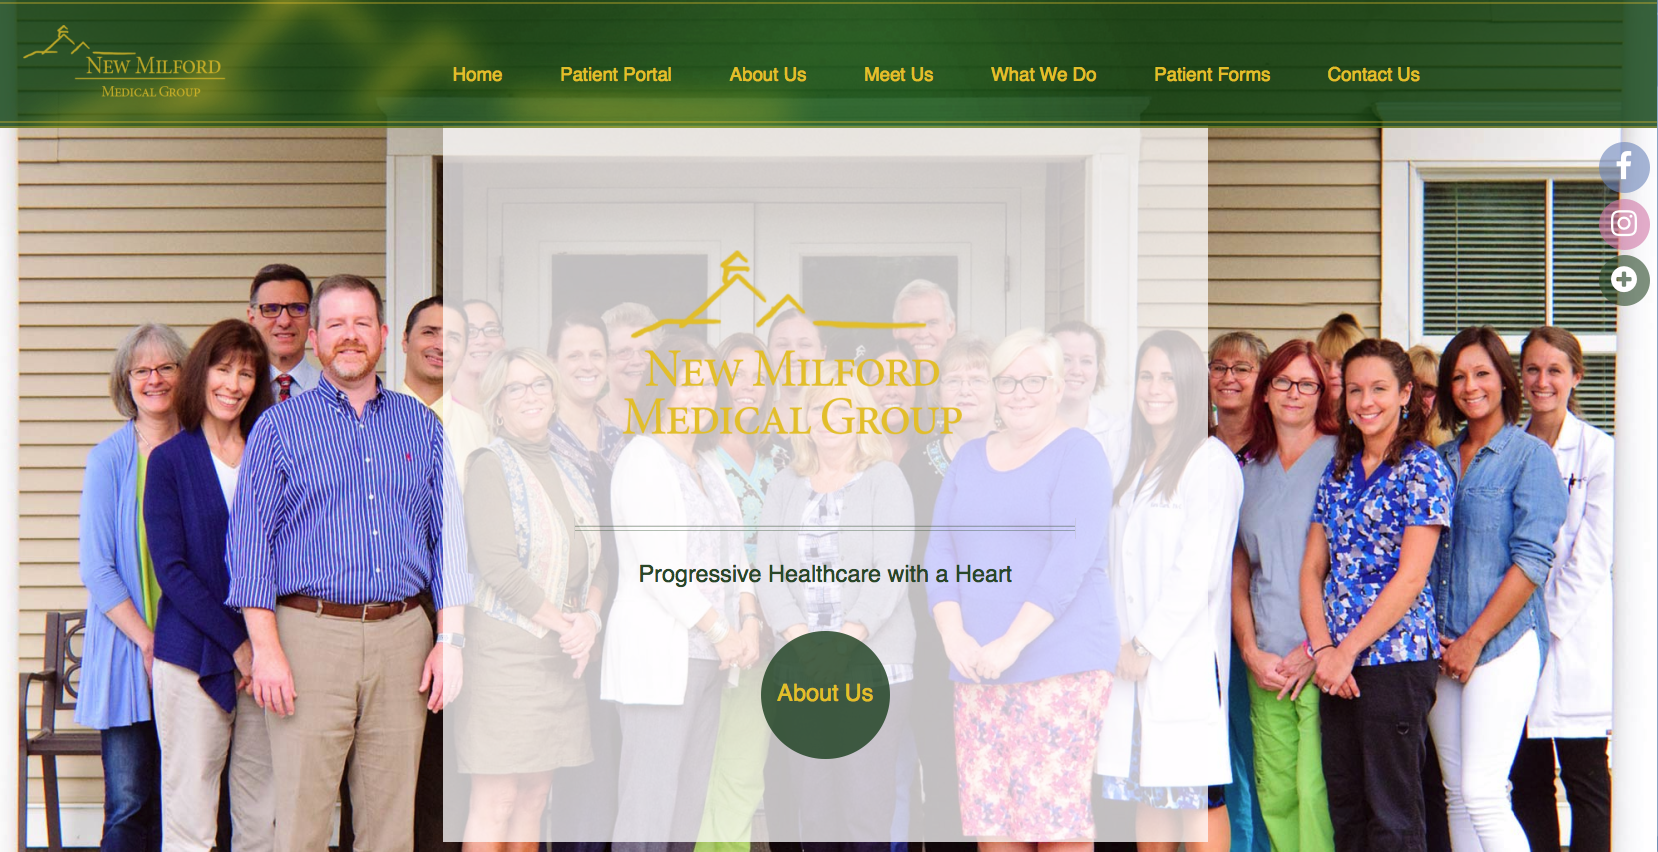 new milford medical group